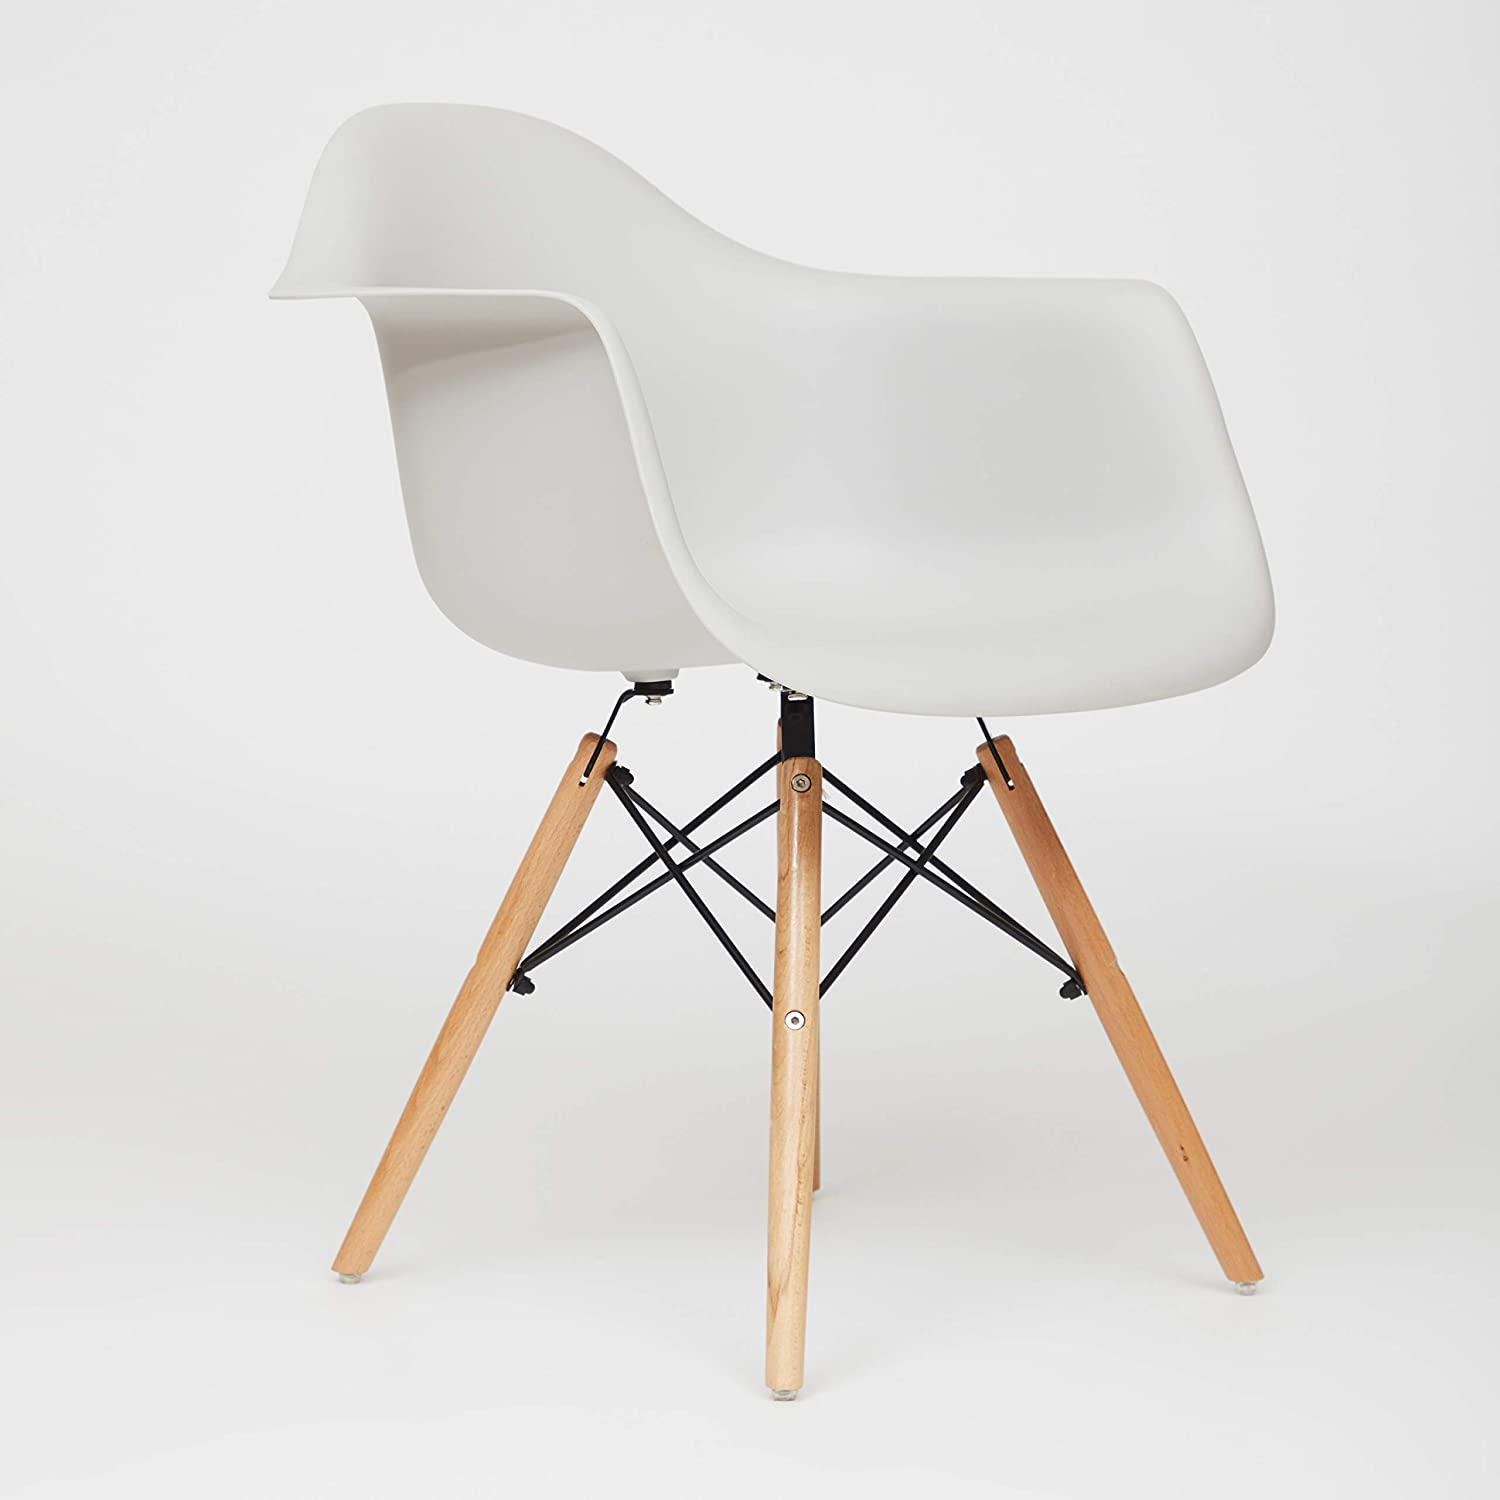 Fusionwell Dining Plastic Armchair with Eiffel Retro Wooden Legs Contemporary Designer Office Kitchen Lounge Bedroom Chair Off White, PP